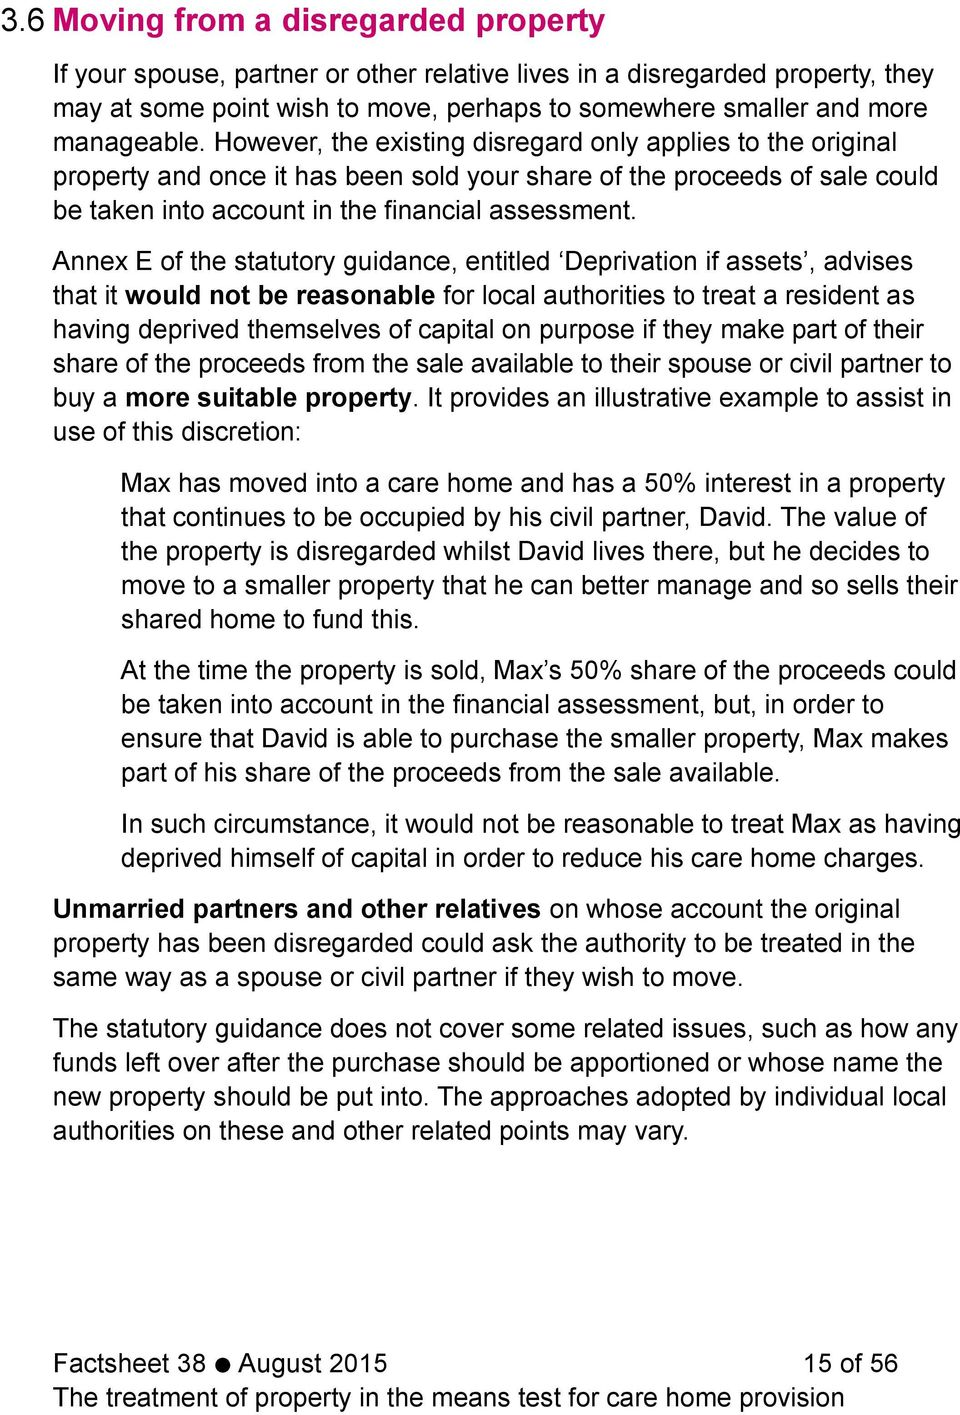 Annex E of the statutory guidance, entitled Deprivation if assets, advises that it would not be reasonable for local authorities to treat a resident as having deprived themselves of capital on